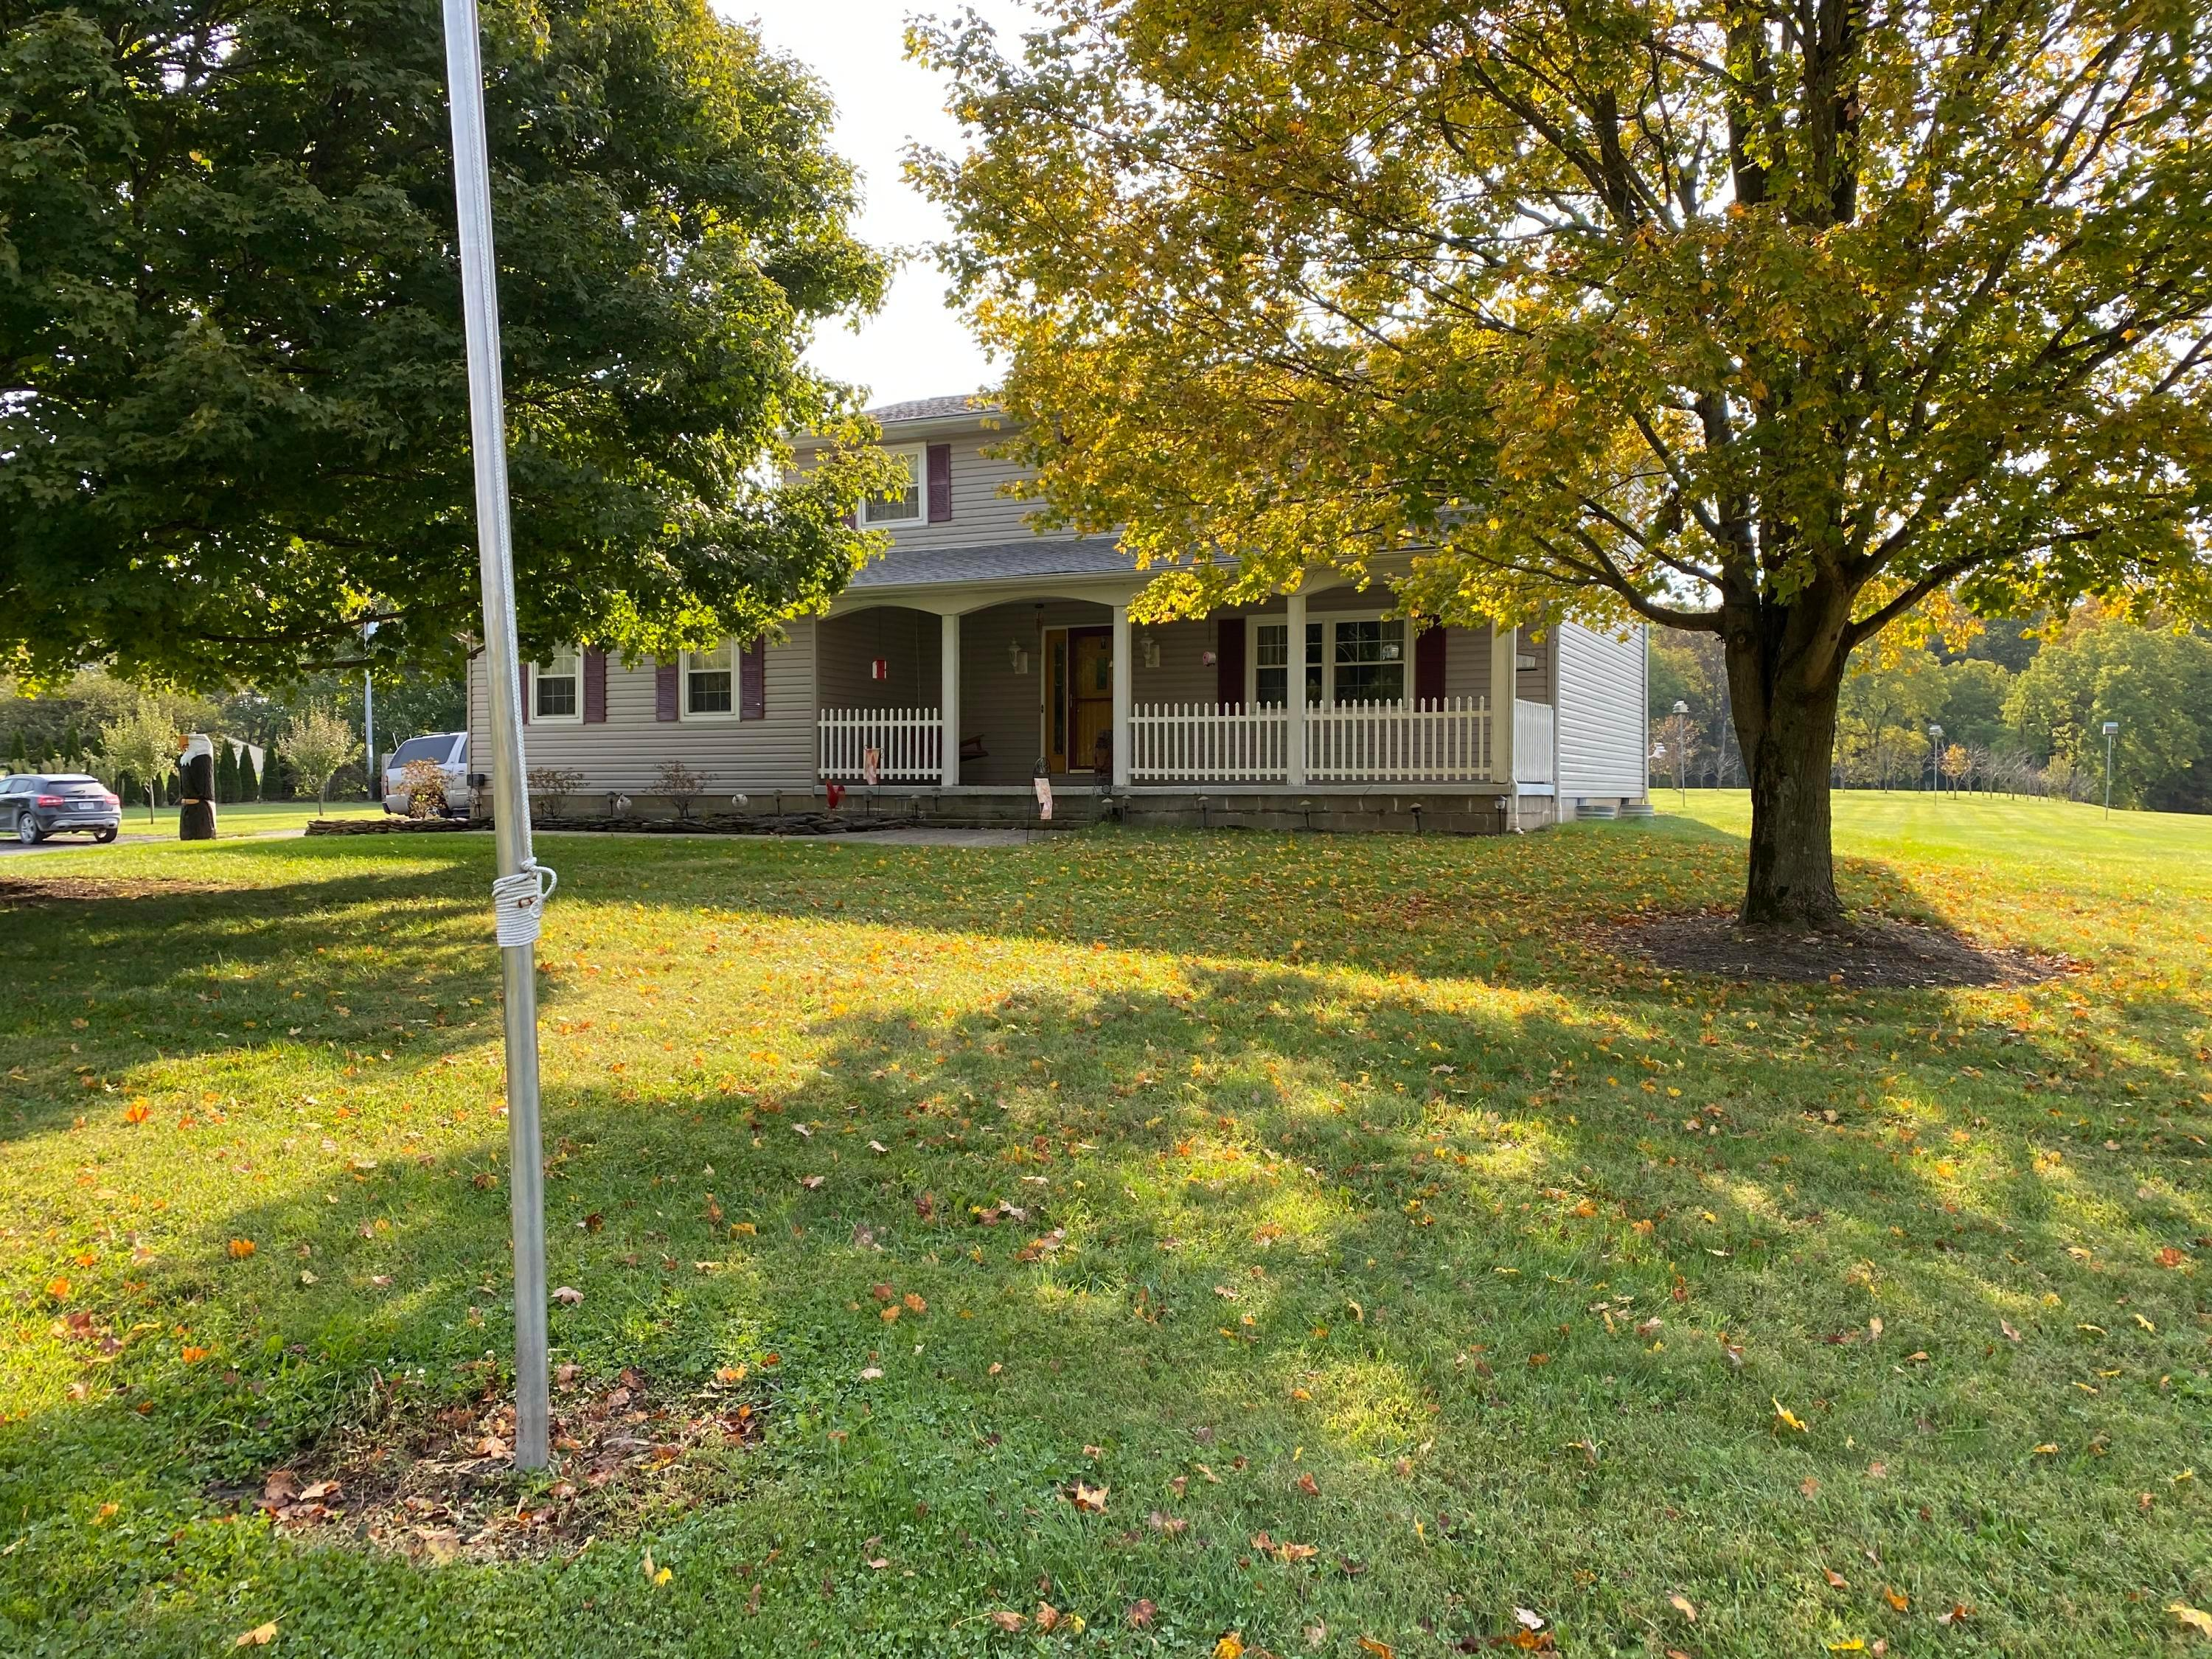 Property for sale at 8430 State Route 656, Sunbury, Ohio 43074